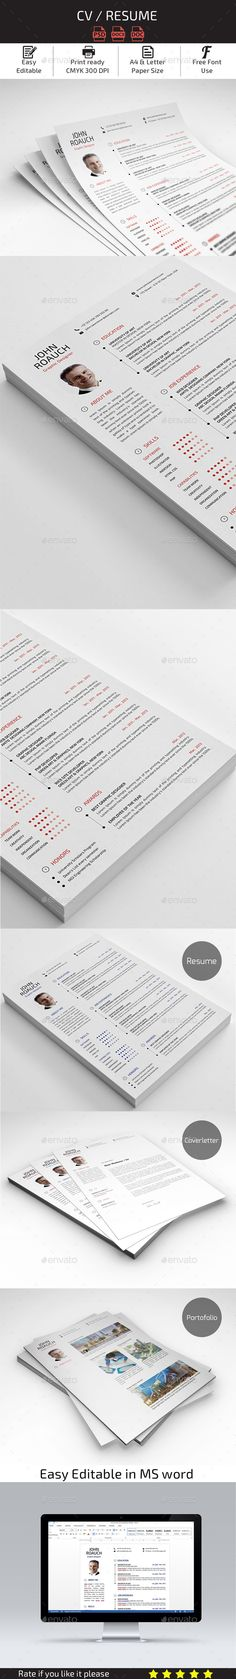 Resume Template #design Download http\/\/graphicrivernet\/item - ms resume template